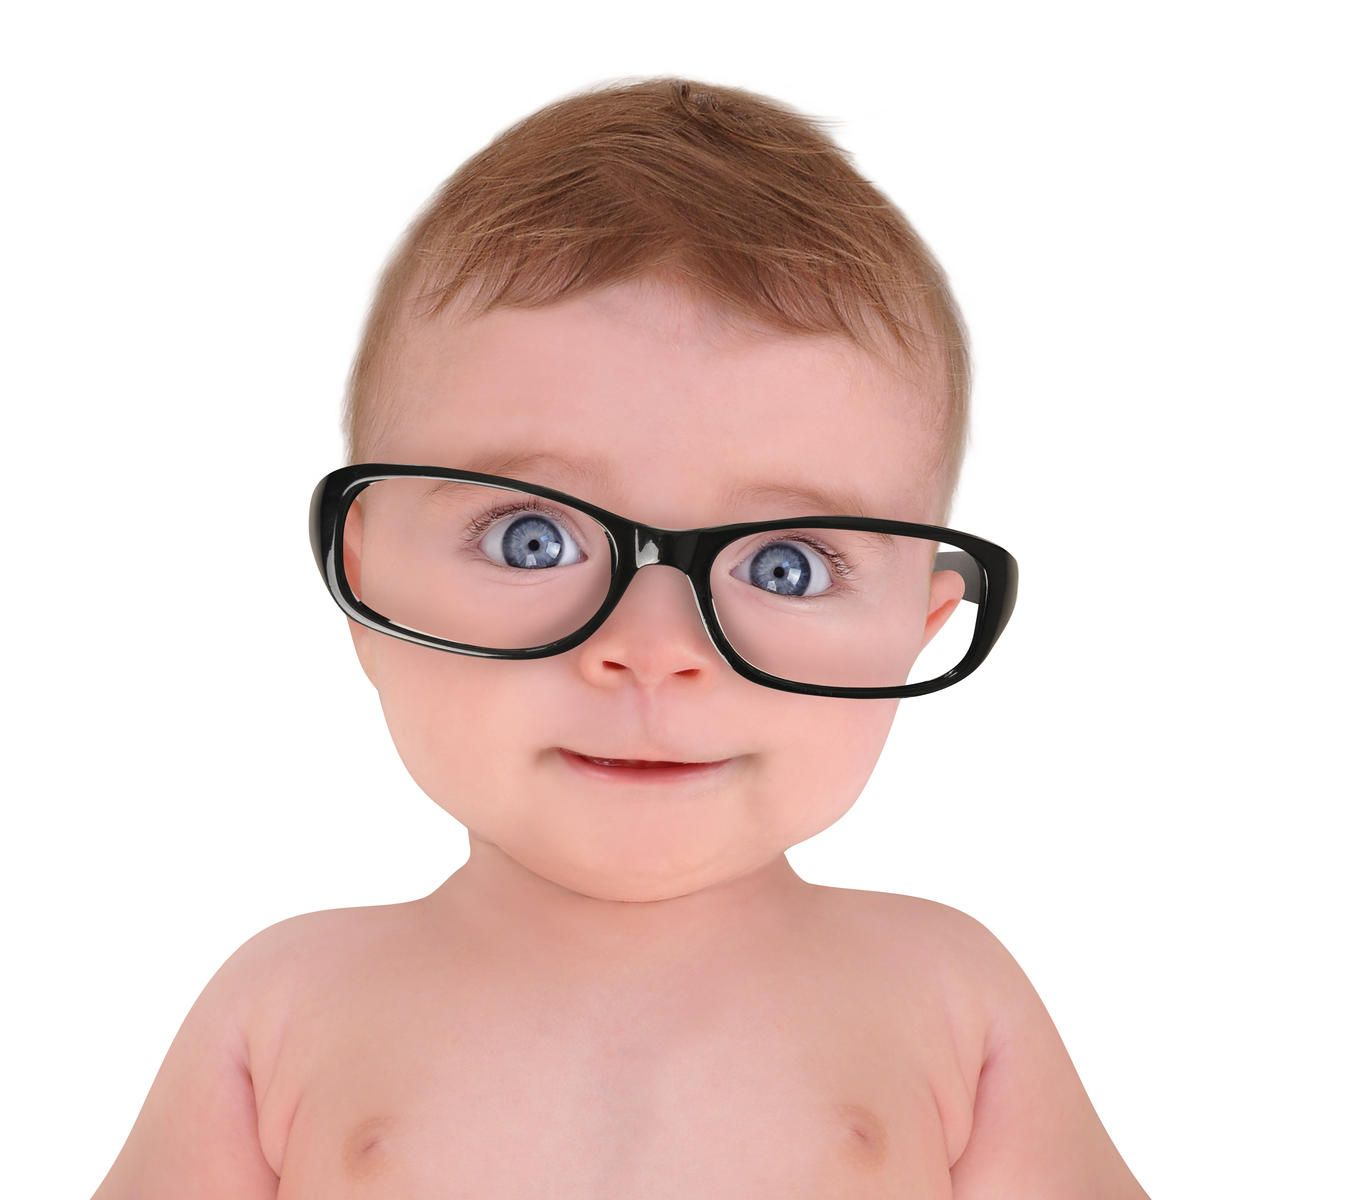 Baby With Big Glasses